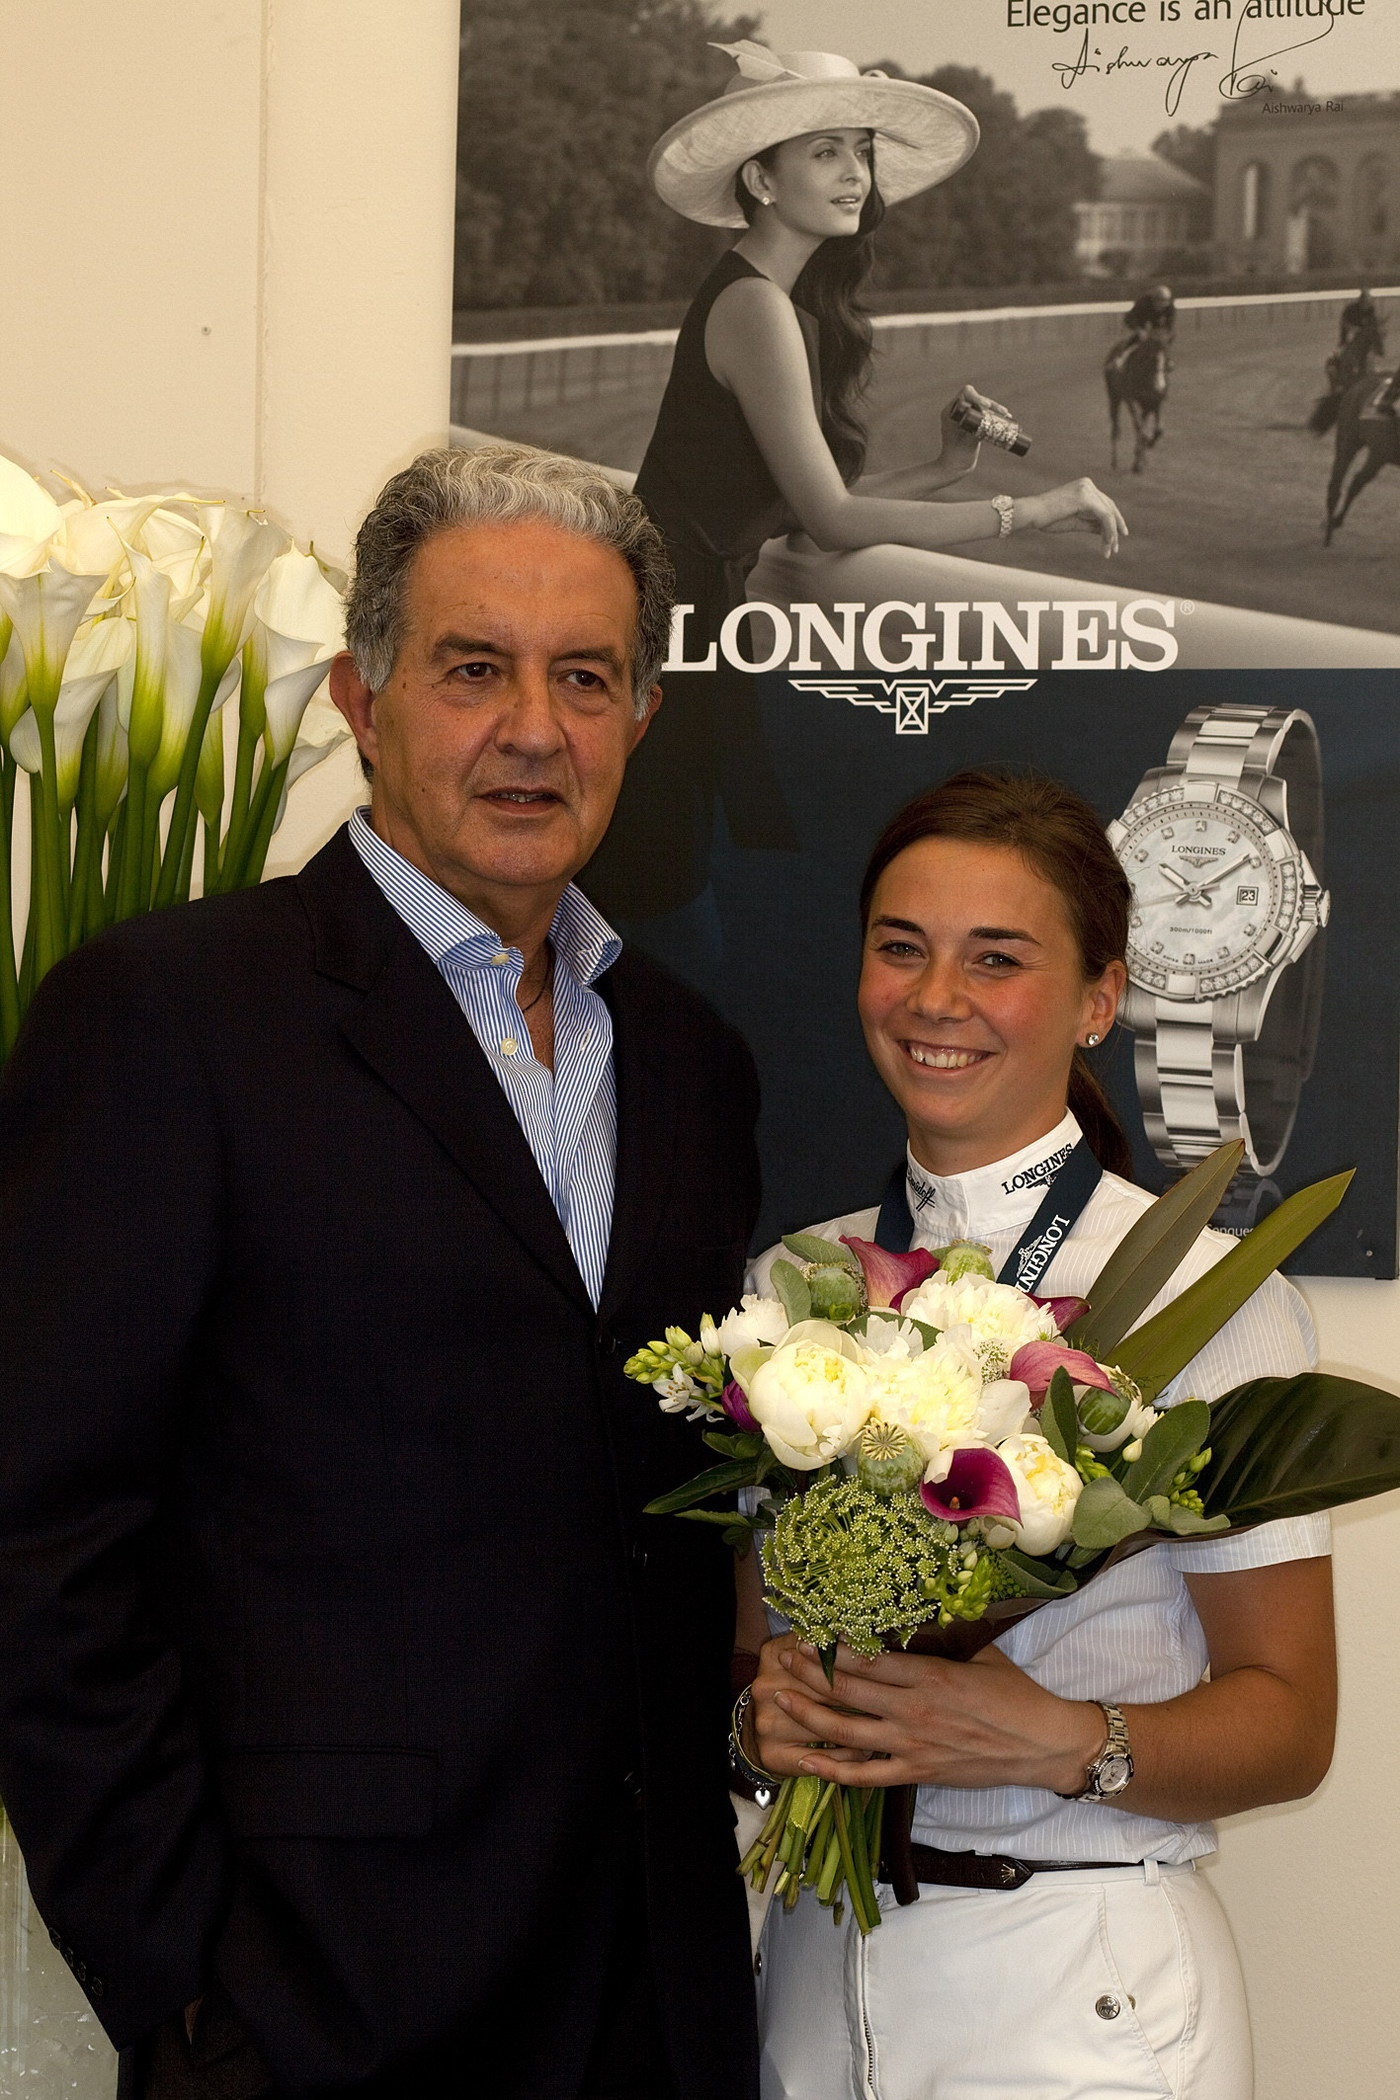 Longines Show Jumping Event: The CSIO Piazza di Siena 2